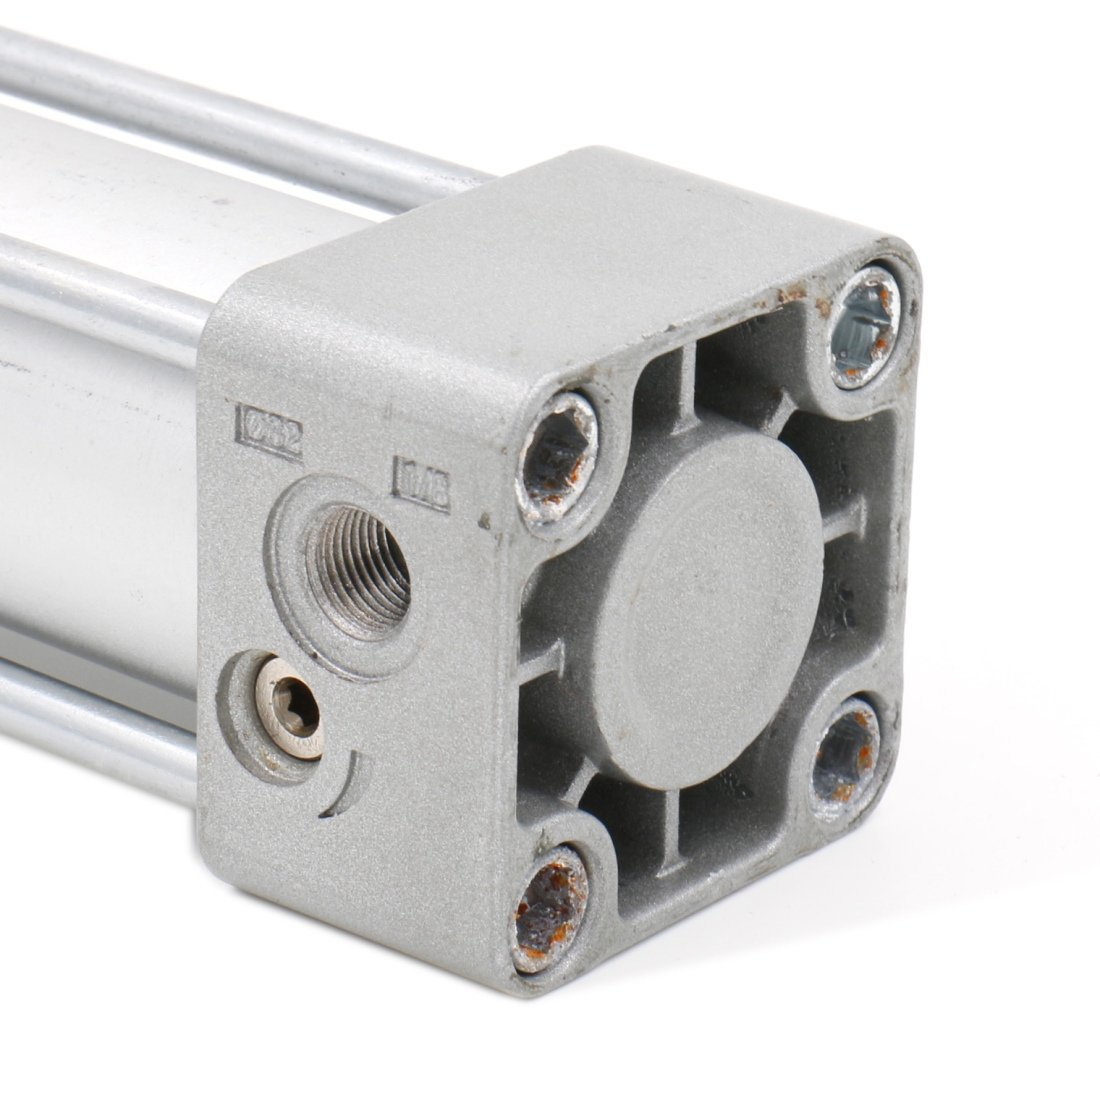 Screwed Piston Rod Dual Action 1 Mpa CHLED Bore: 1 1//4 inch Stroke: 6 inch Baomain Pneumatic Air Cylinder SC 32 x 150 PT 1//8